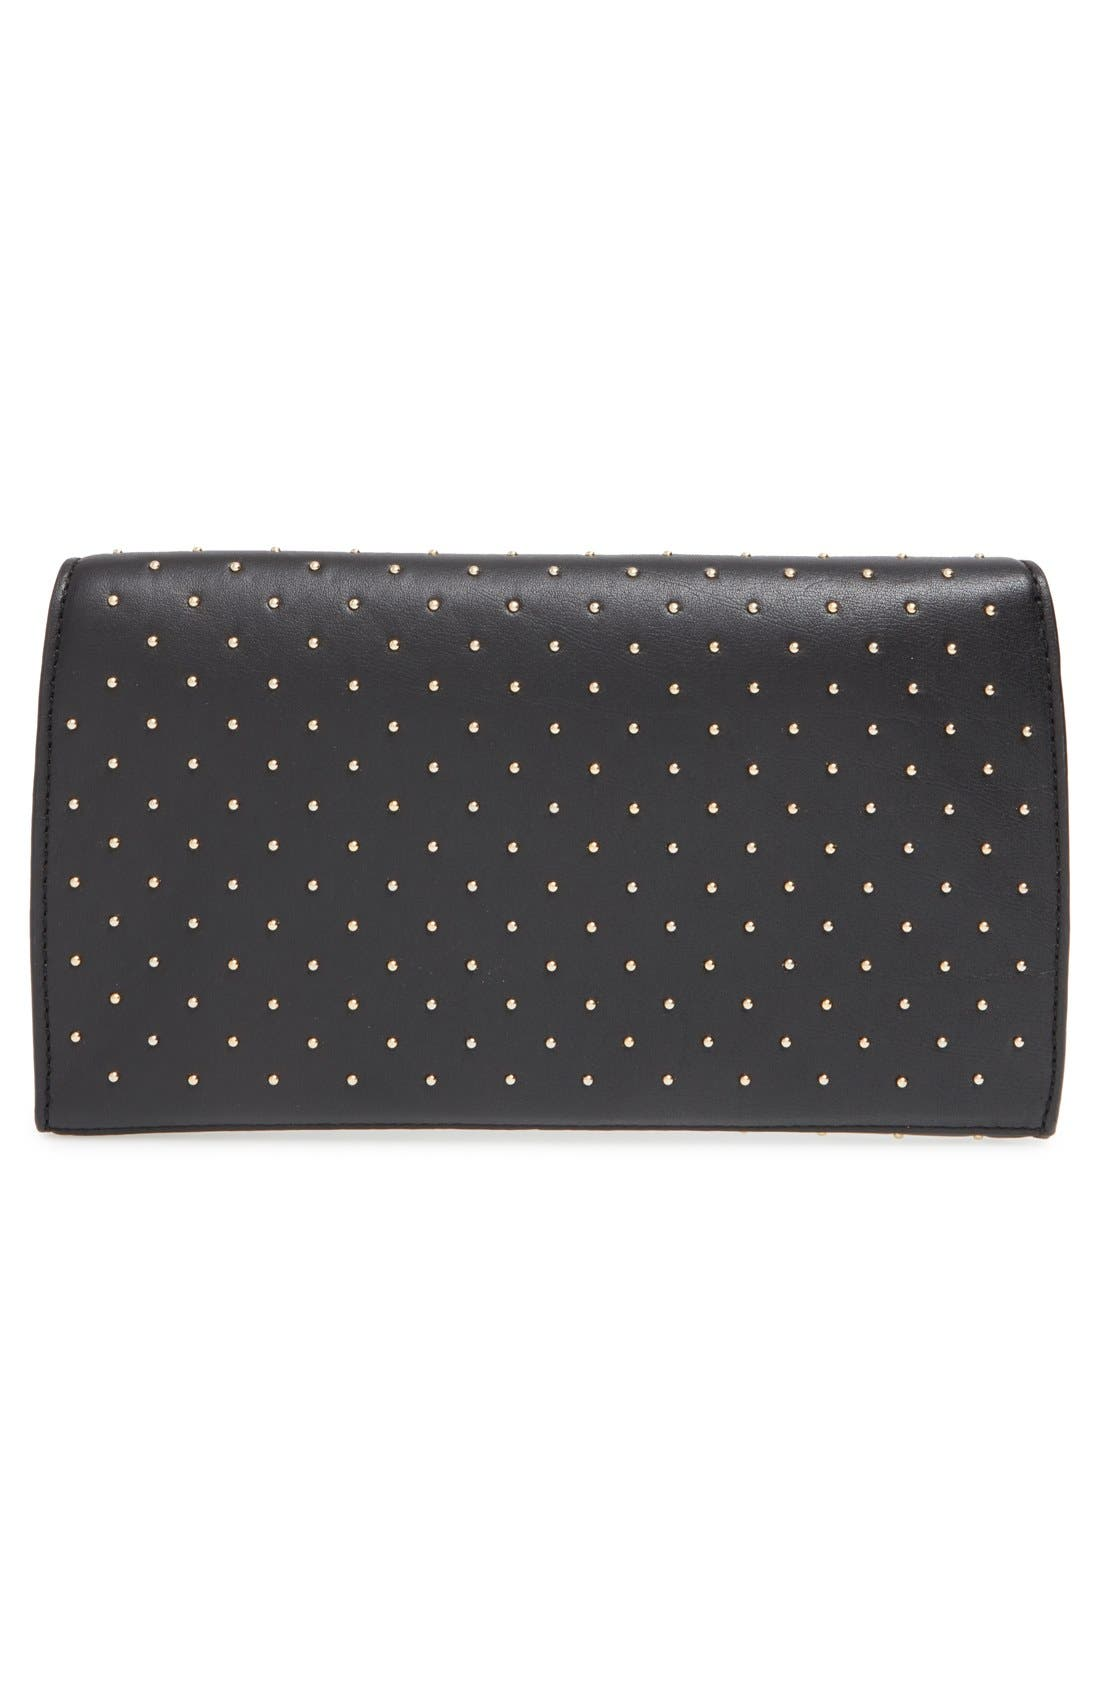 Alternate Image 3  - Diane von Furstenberg '440 Glory Uptown' Studded Leather Clutch